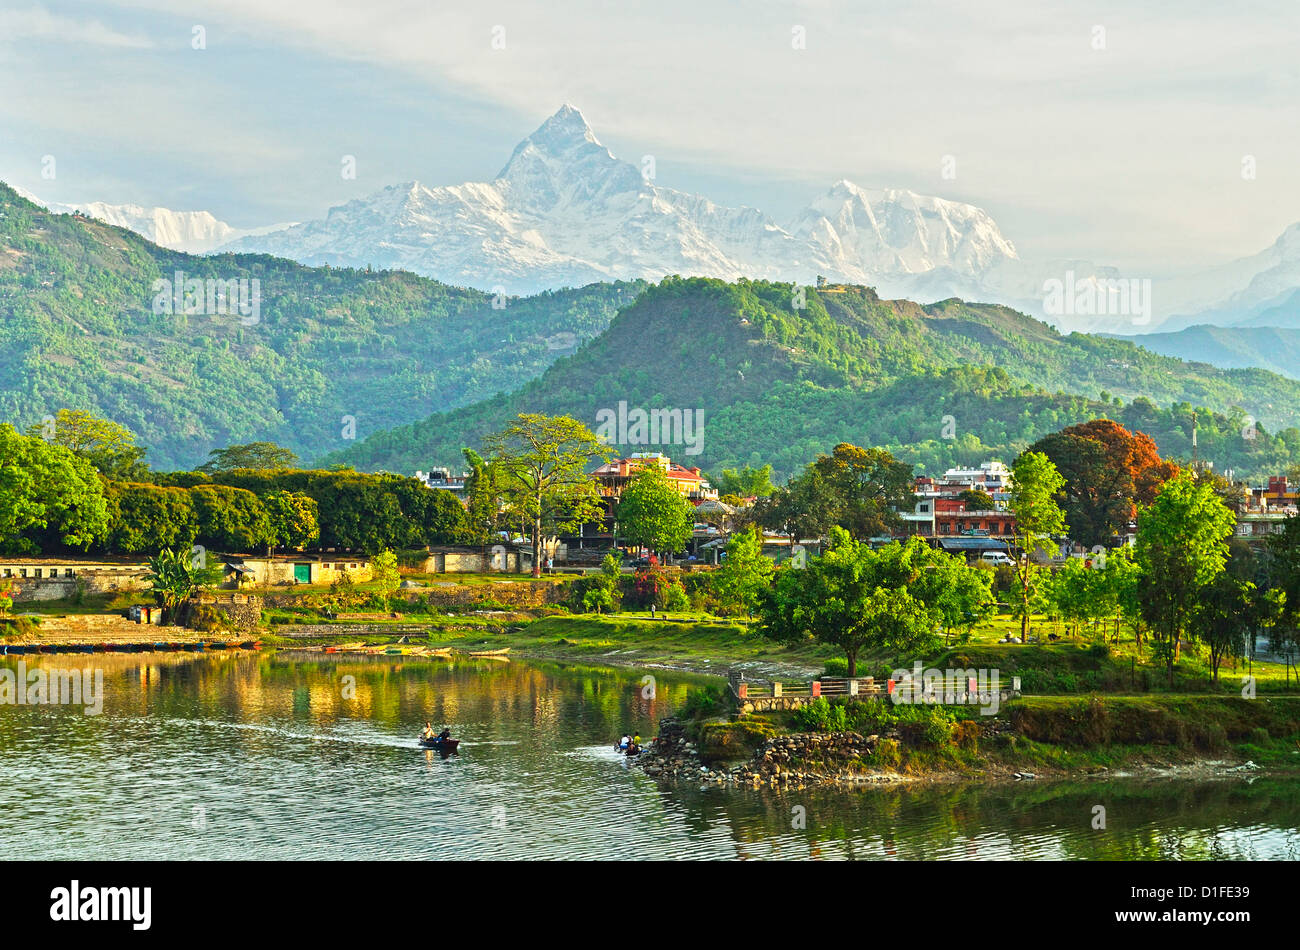 Annapurna Himal, Machapuchare and Phewa Tal seen from Pokhara, Gandaki Zone, Western Region, Nepal, Himalayas, Asia - Stock Image